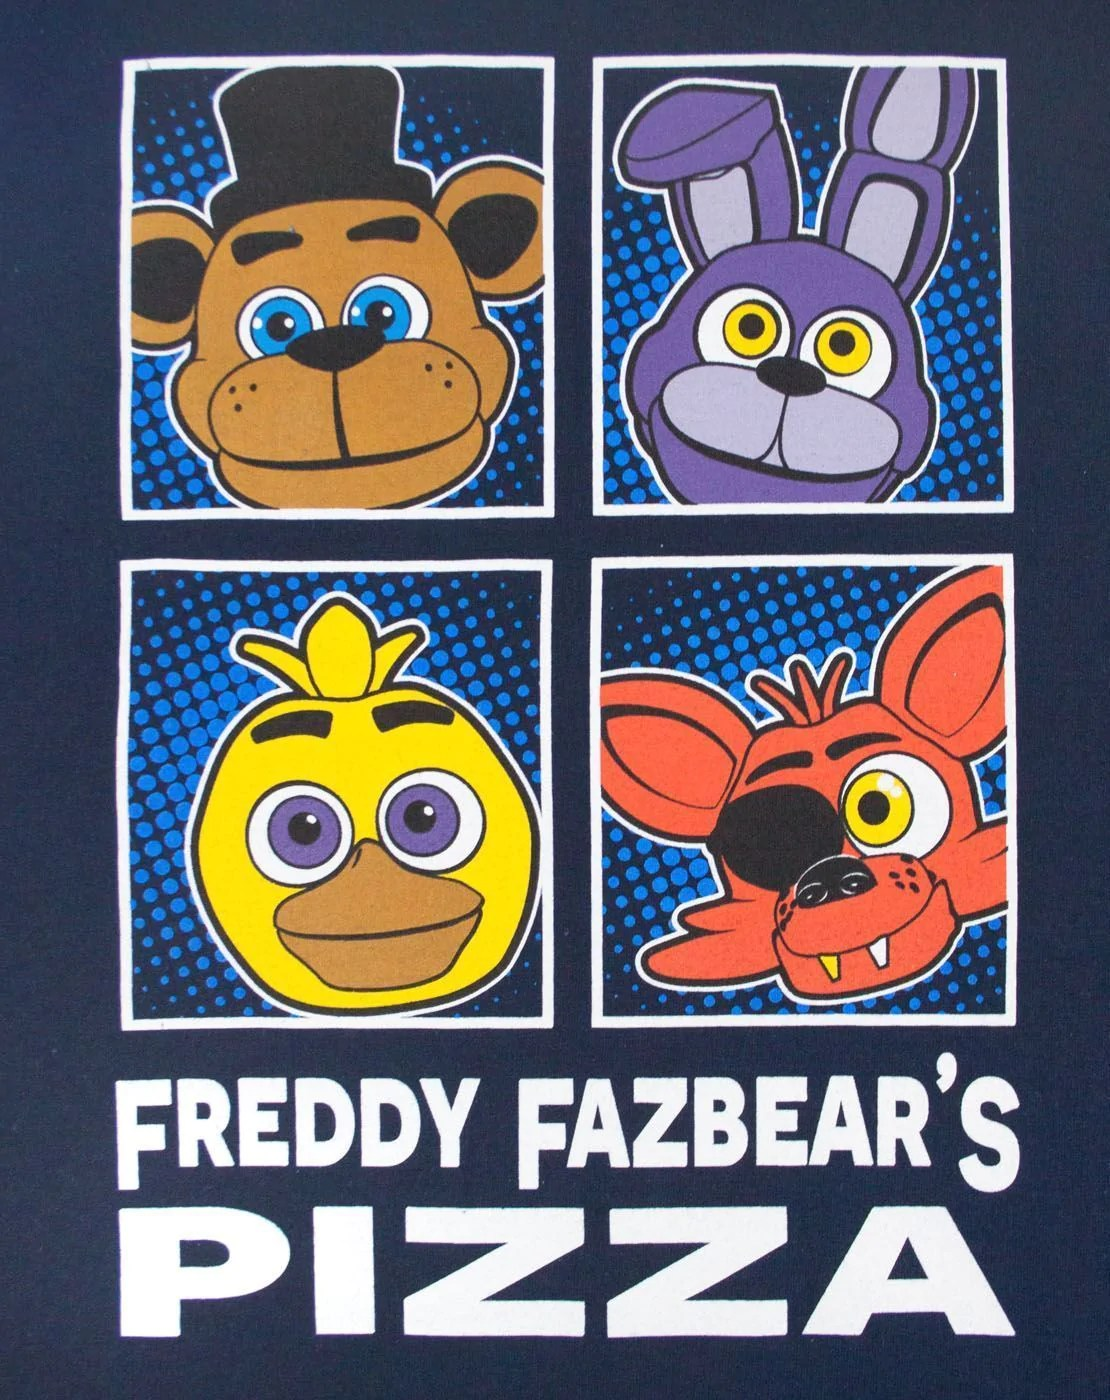 2048 Fnaf Five Nights At Freddy S Panels Boy S T Shirt Noisy Sauce Live